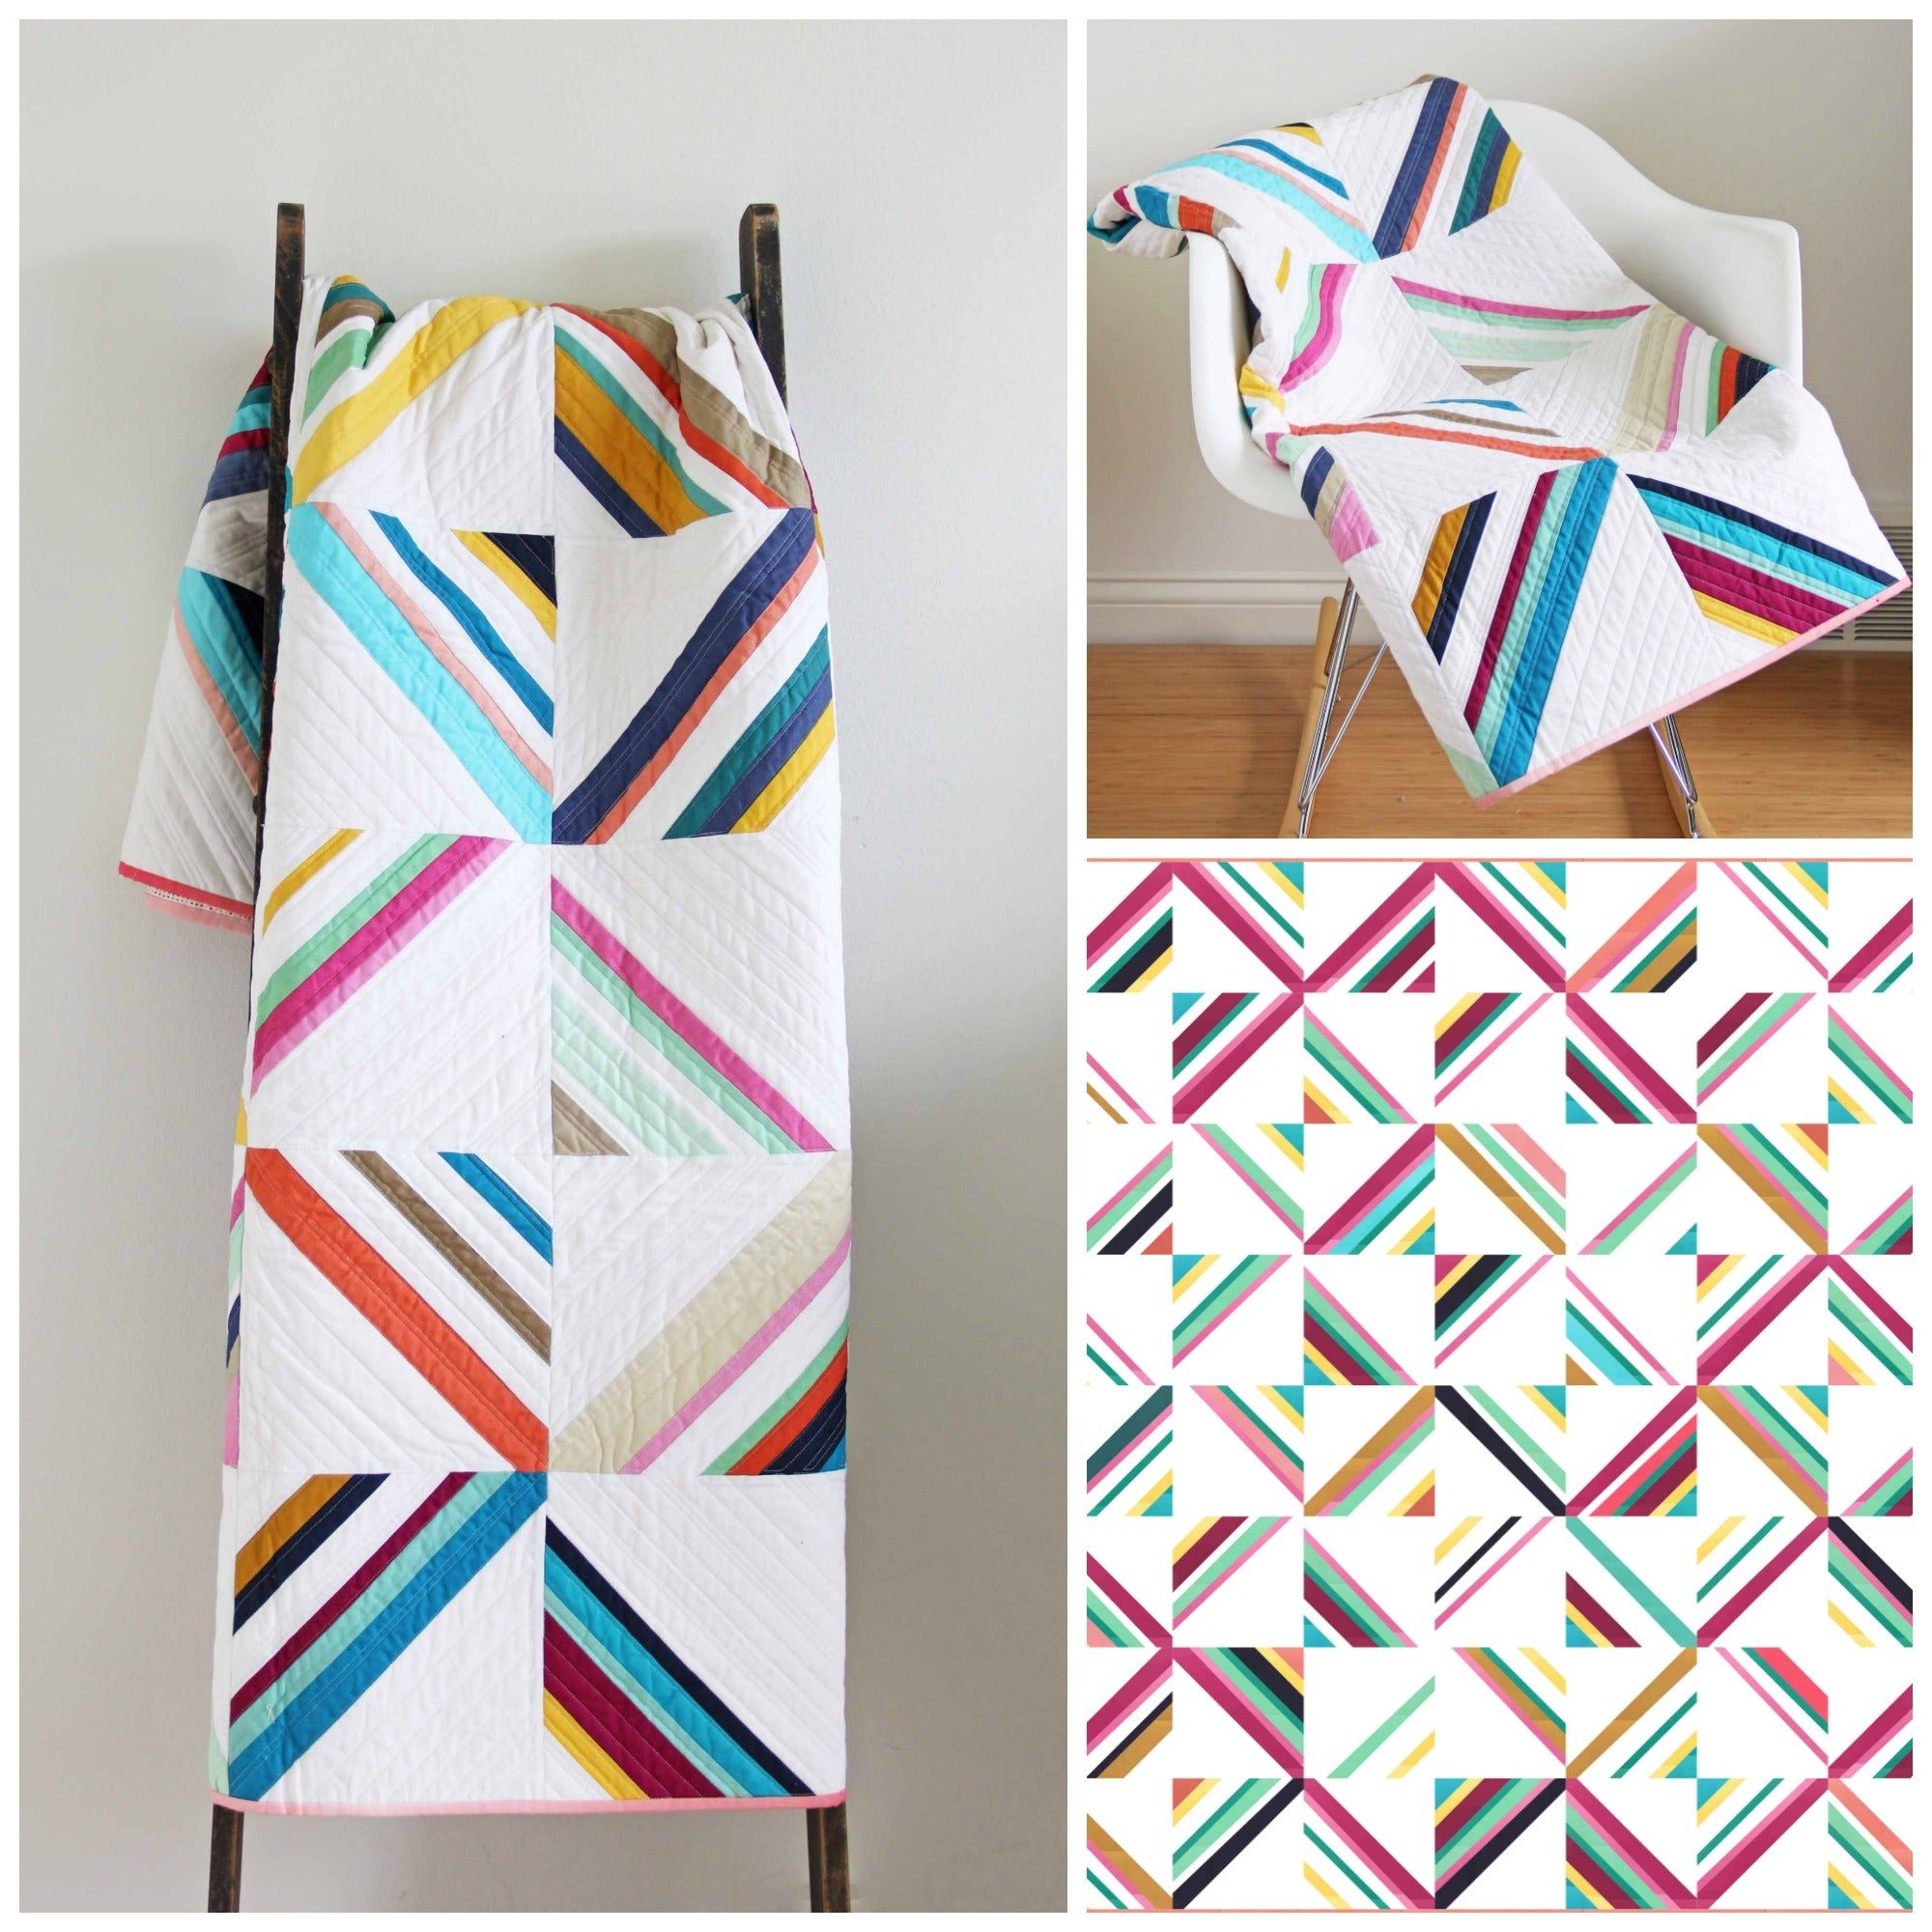 V And Co  U2014 Hang Ten Ombre Quilt Pattern